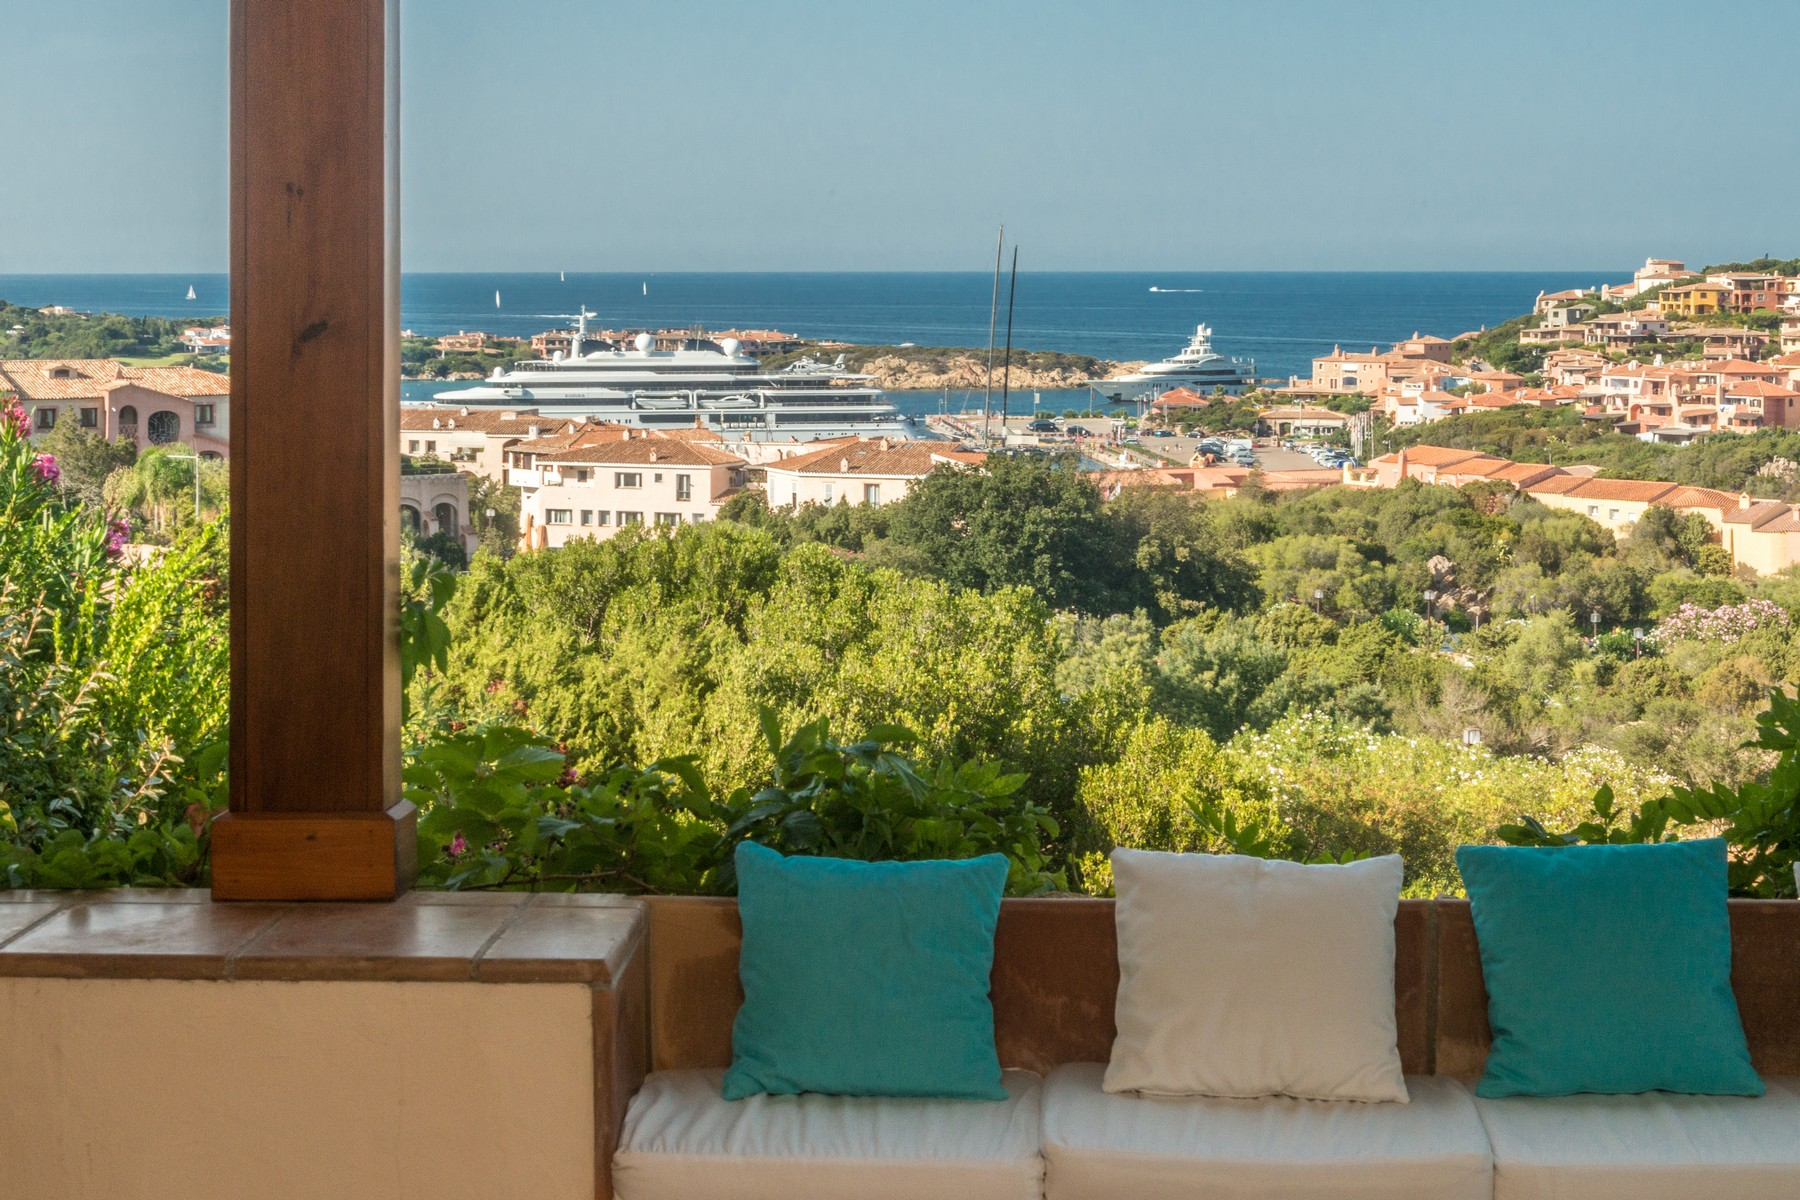 Apartments for Sale at Porto Cervo Porto Cervo Centro Beautiful apartment in the heart of Porto Cervo Porto Cervo, Sassari Italy